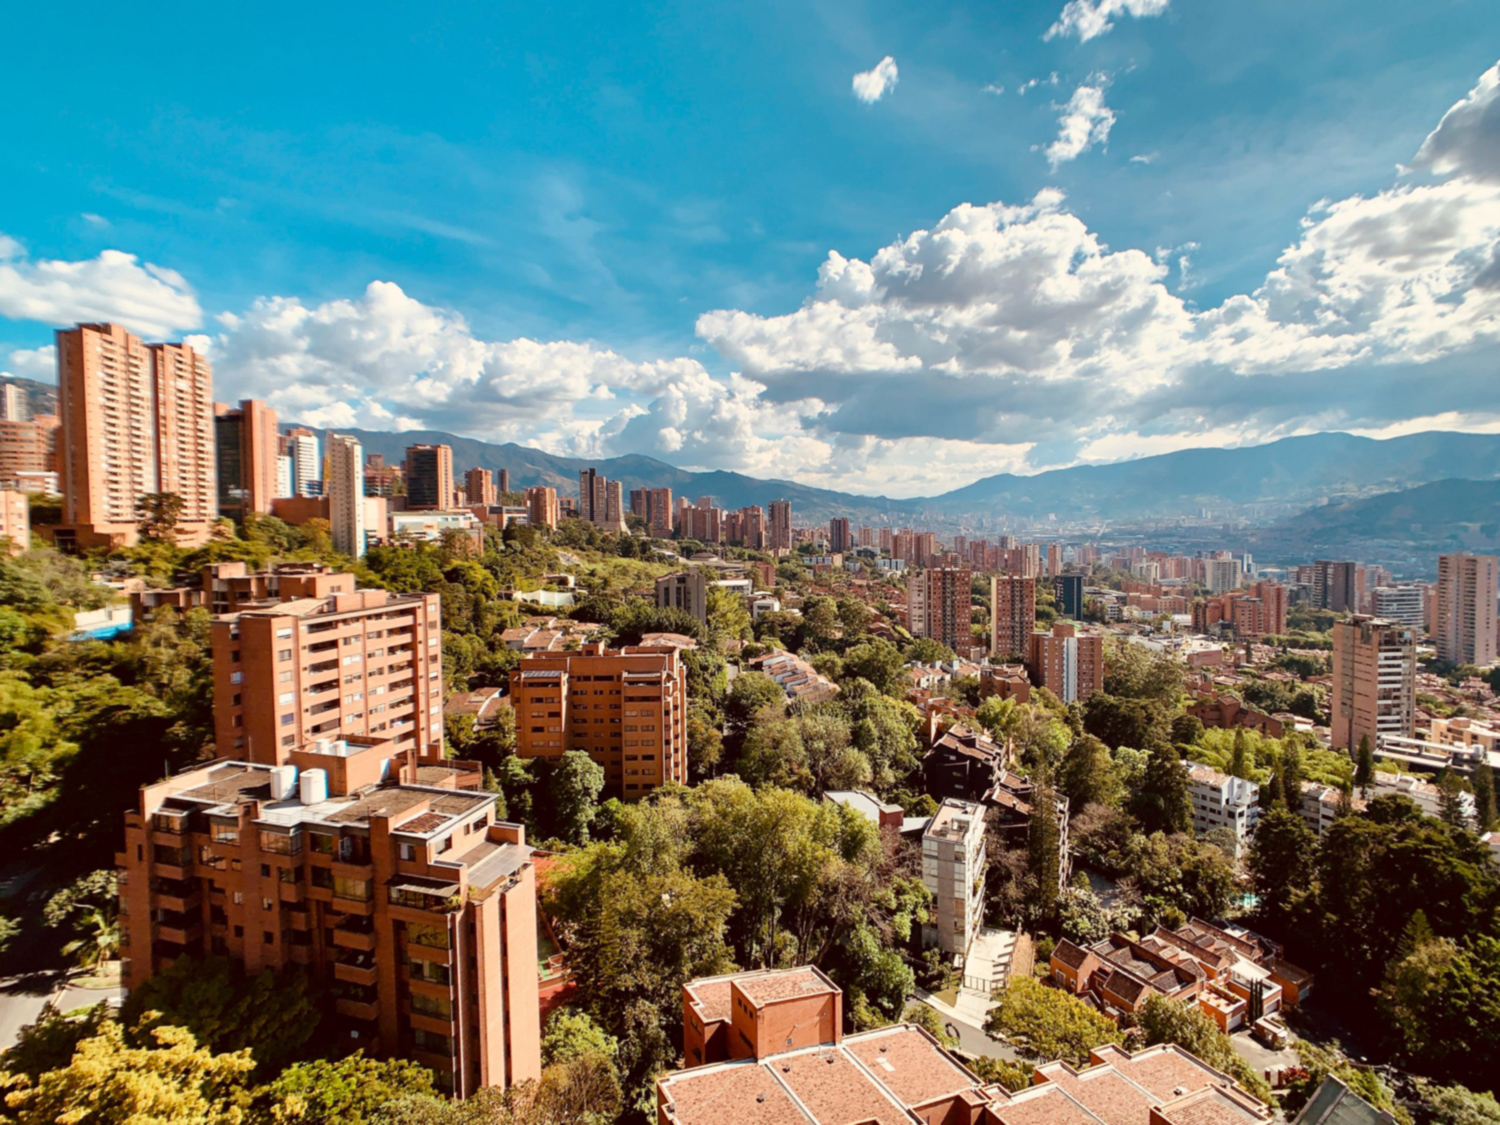 picture of Medellin Colombia, a nearshoring destination